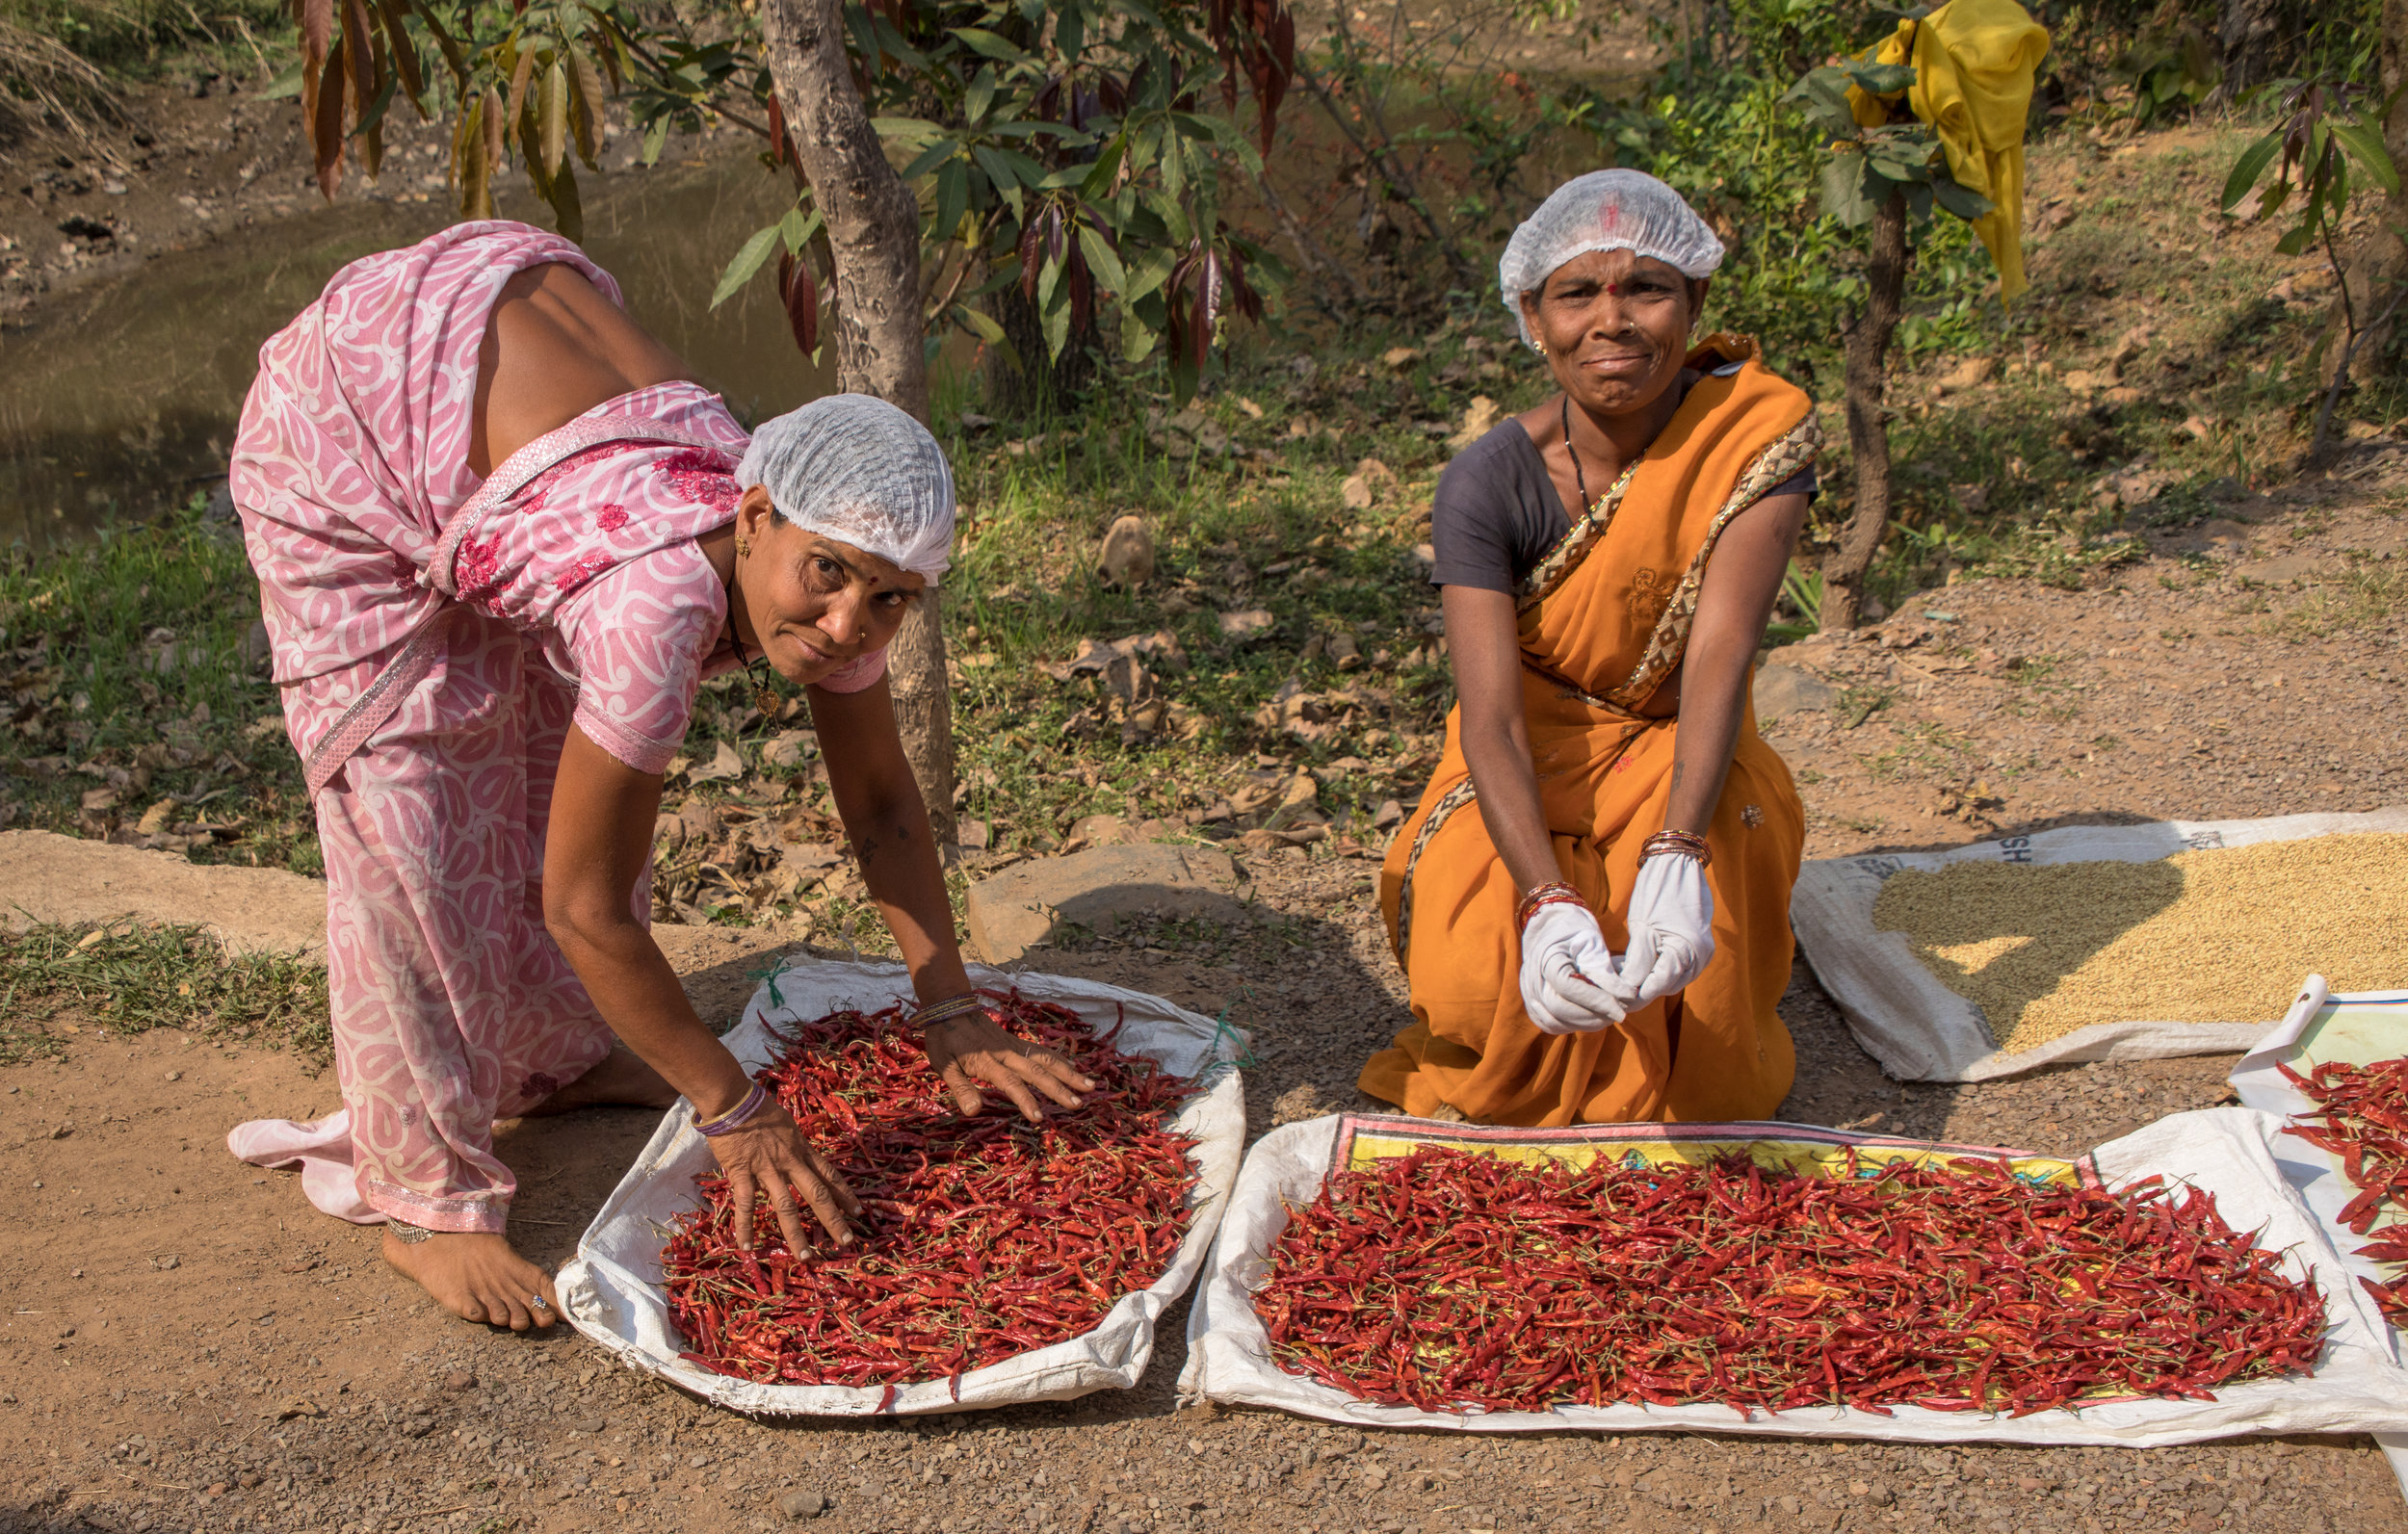 A couple local women prepare a mix of spices to be sold in nearby markets.